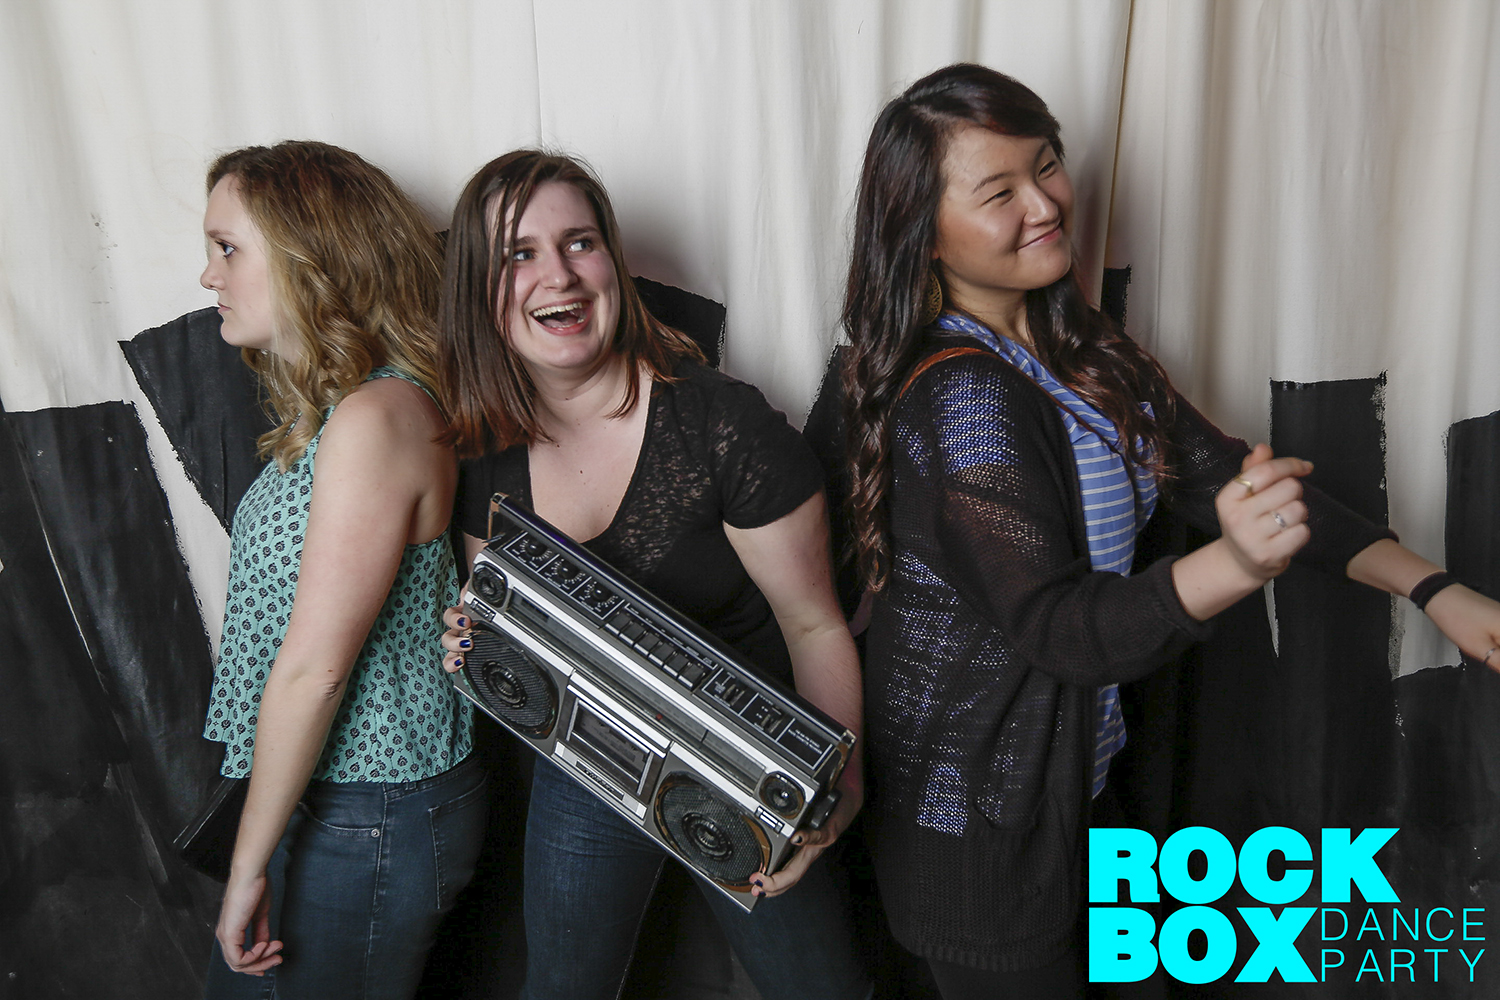 Rock box feb 2015-0051.jpg